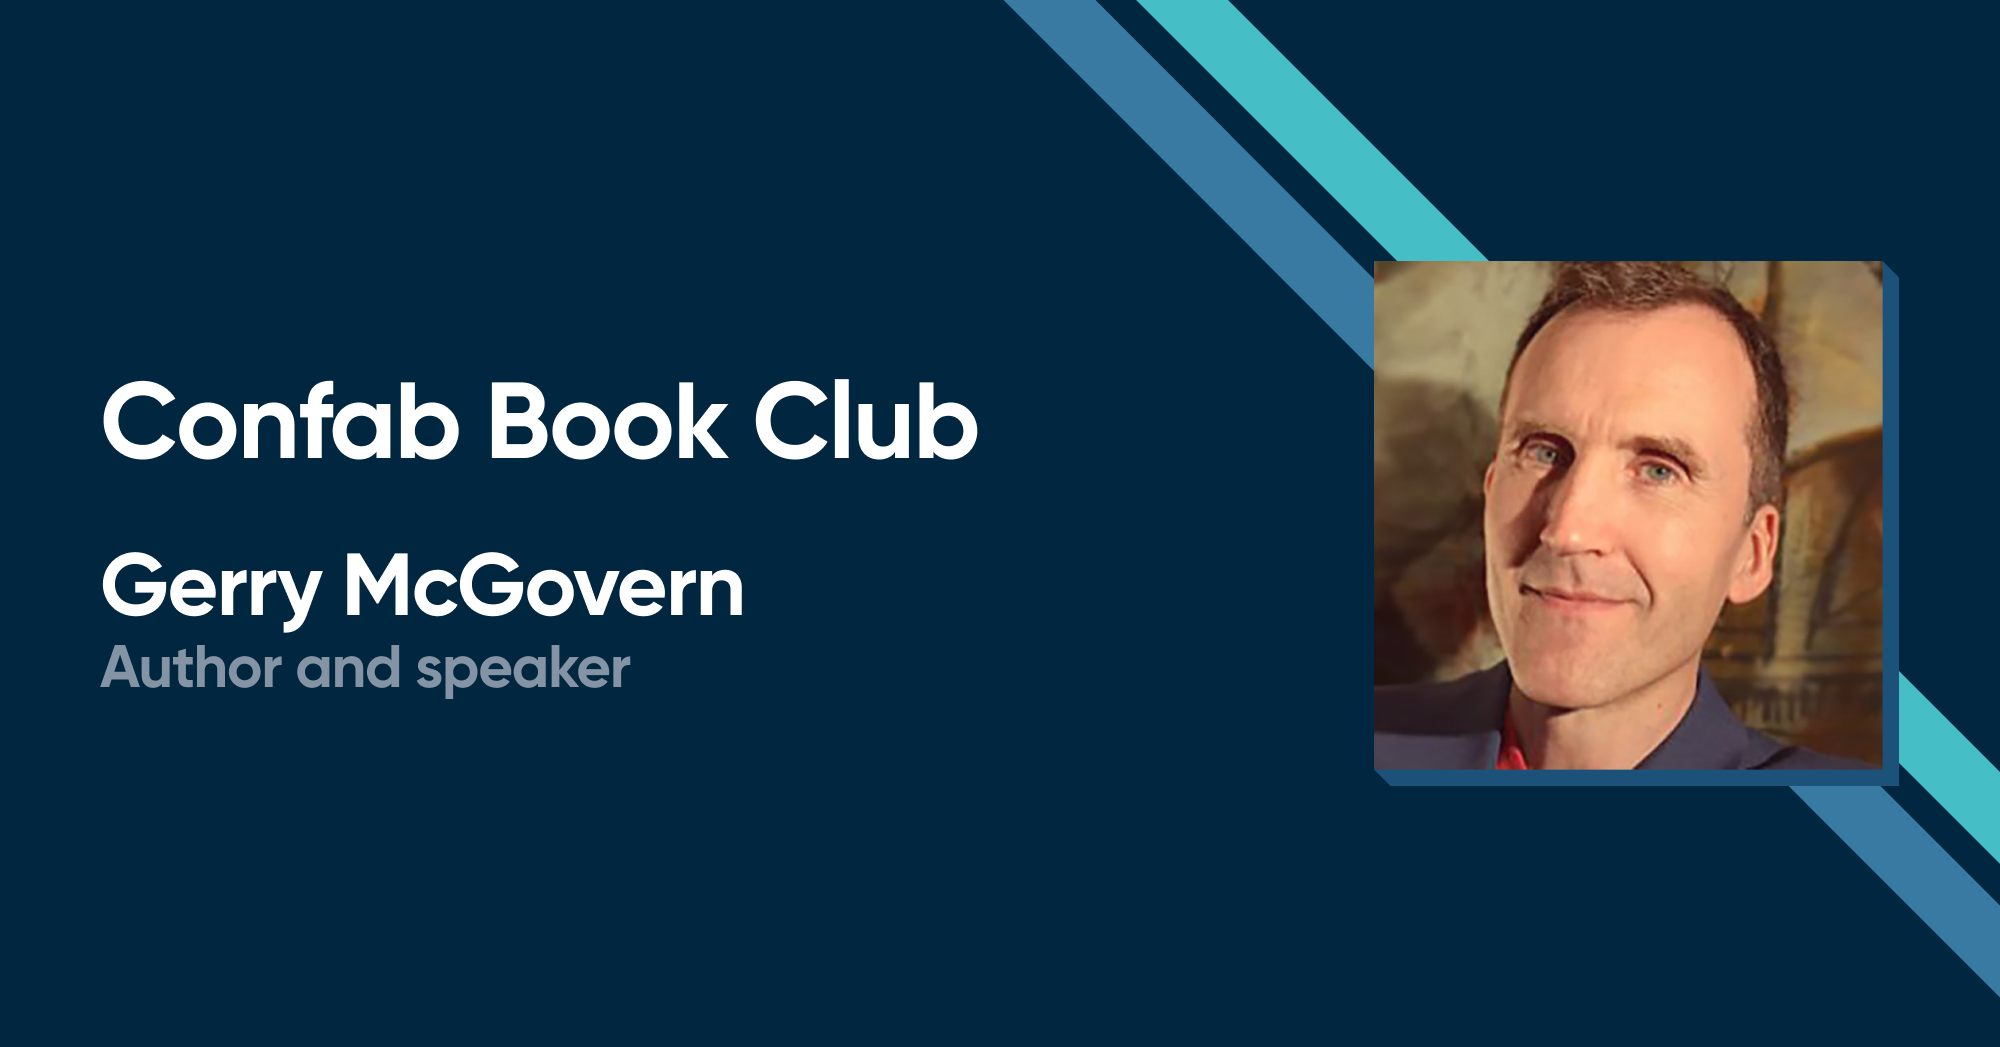 Confab Book Club with Gerry McGovern